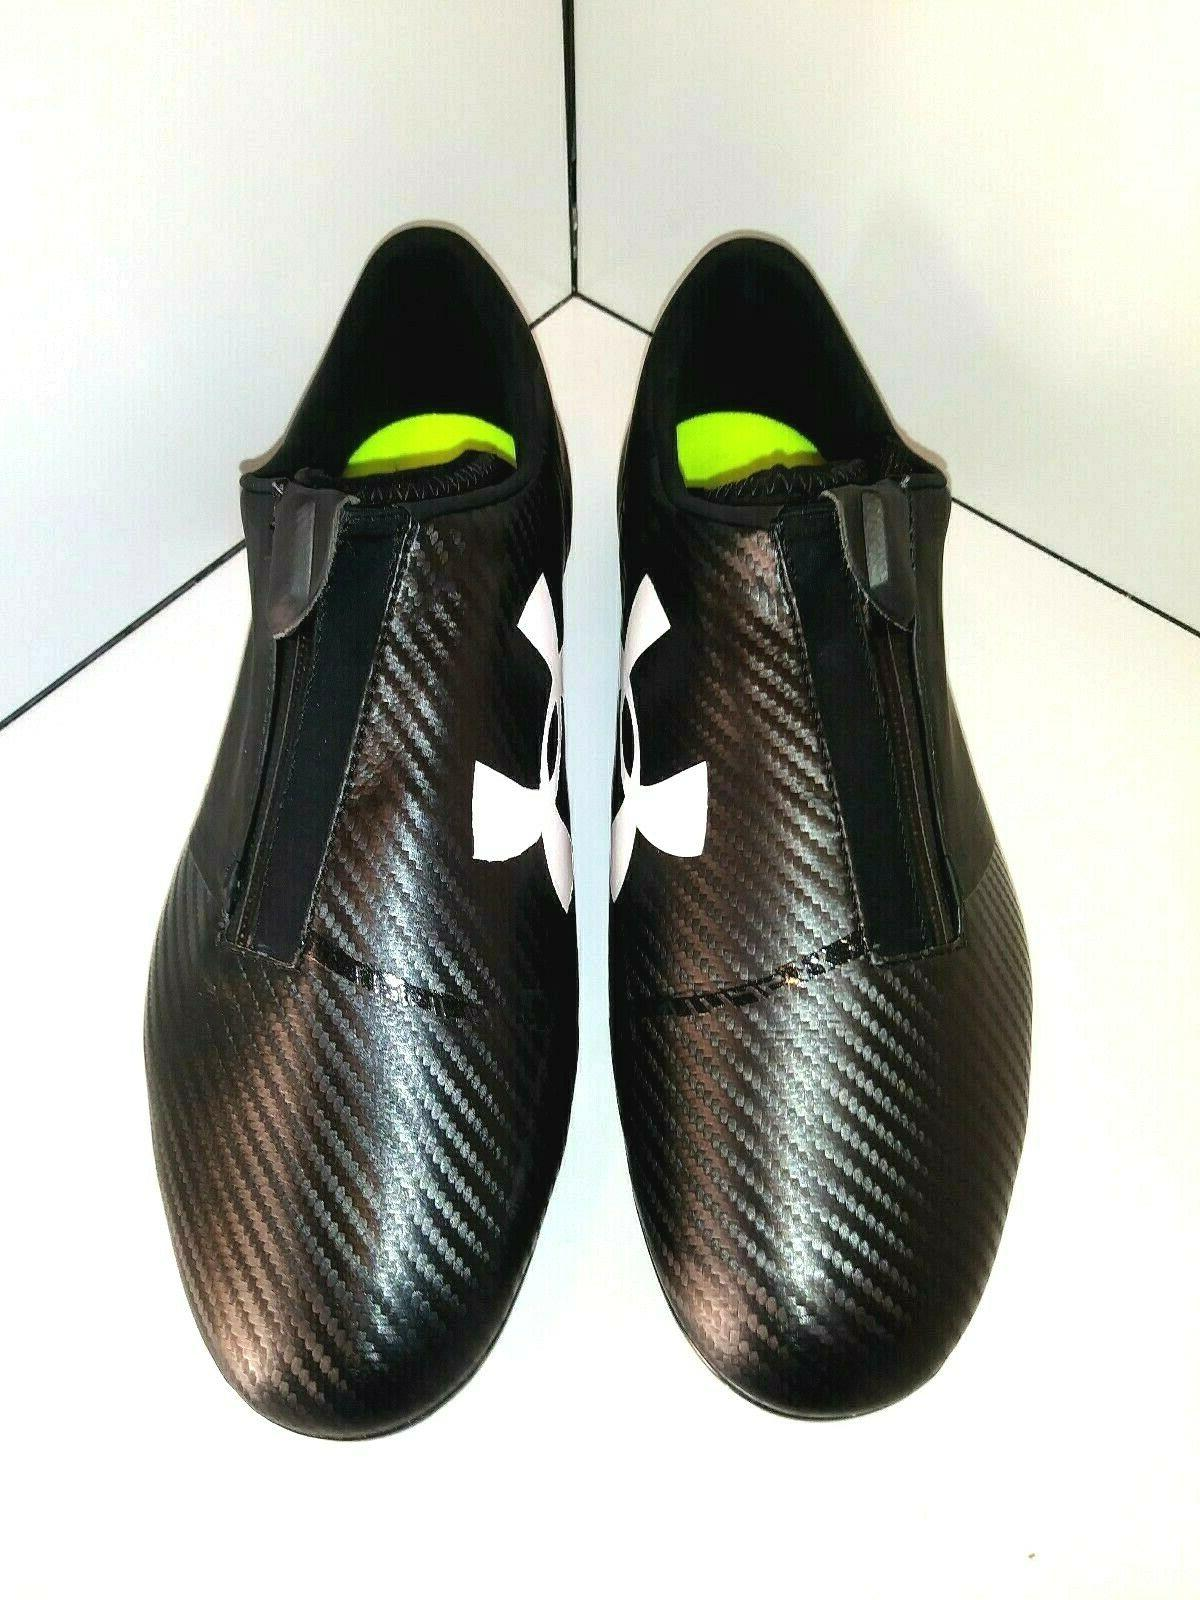 Under Armour FG Carbon Mens Soccer